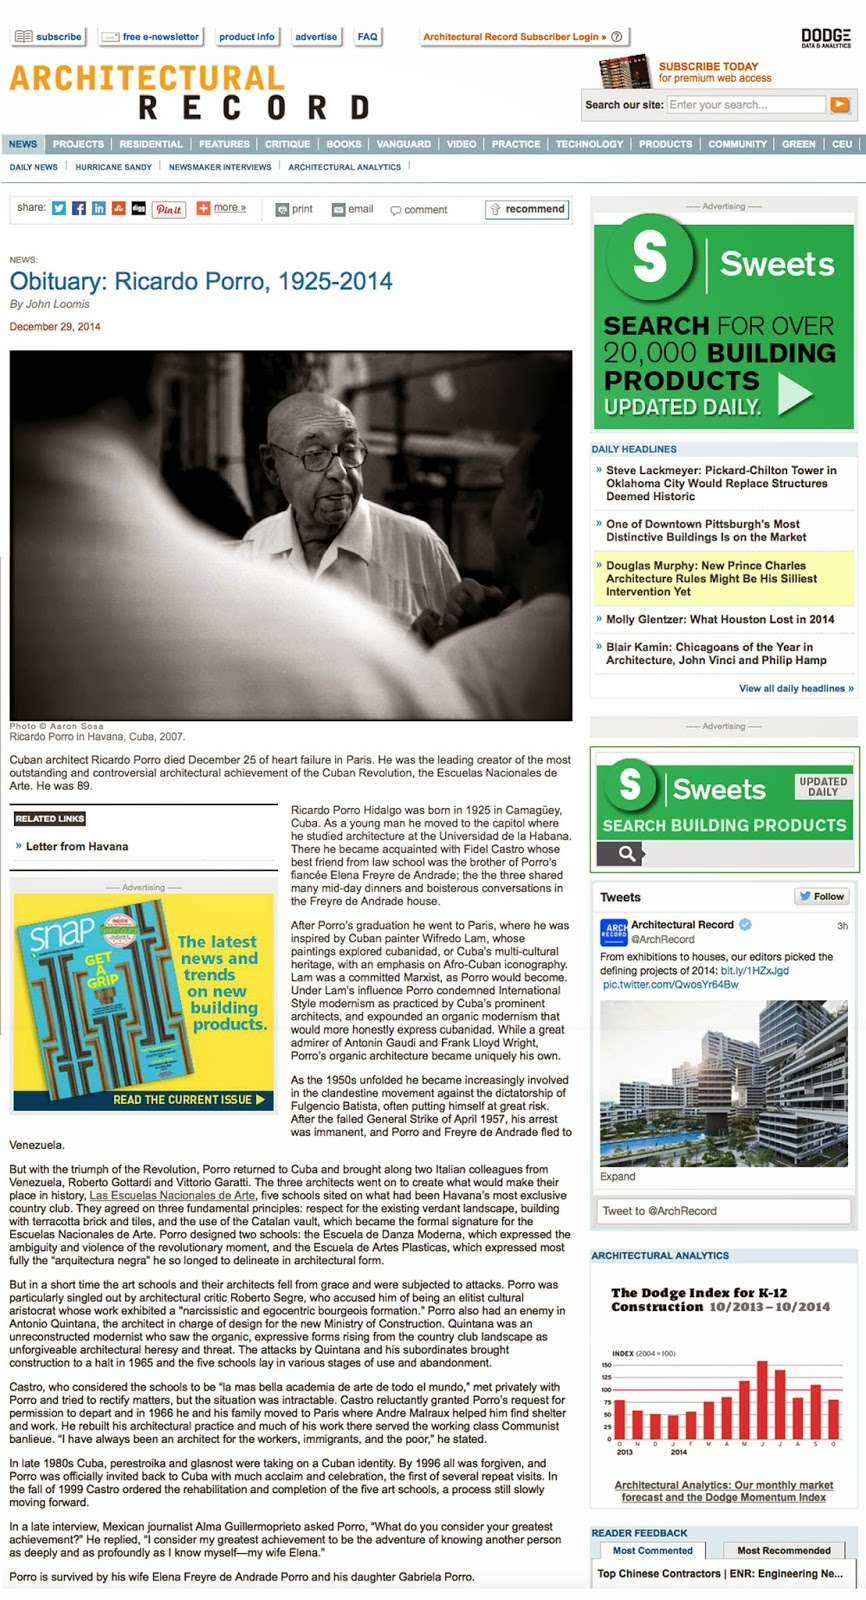 http://archrecord.construction.com/news/2014/12/141229-Obituary-Ricardo-Porro-1925-2014.asp